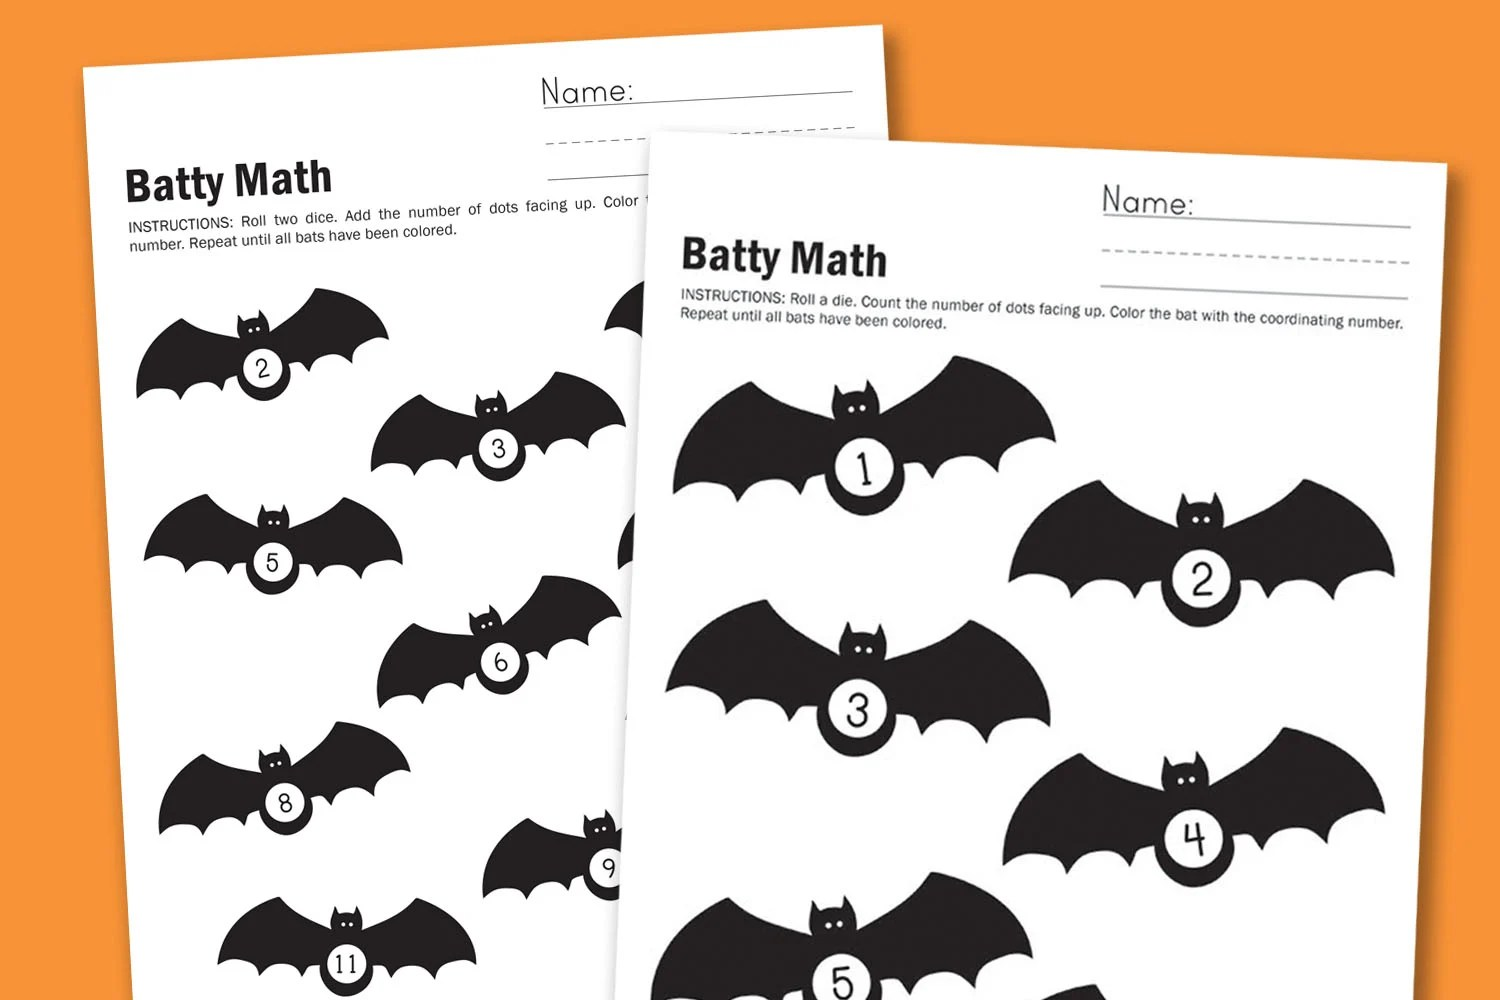 Worksheet Wednesday Batty Math